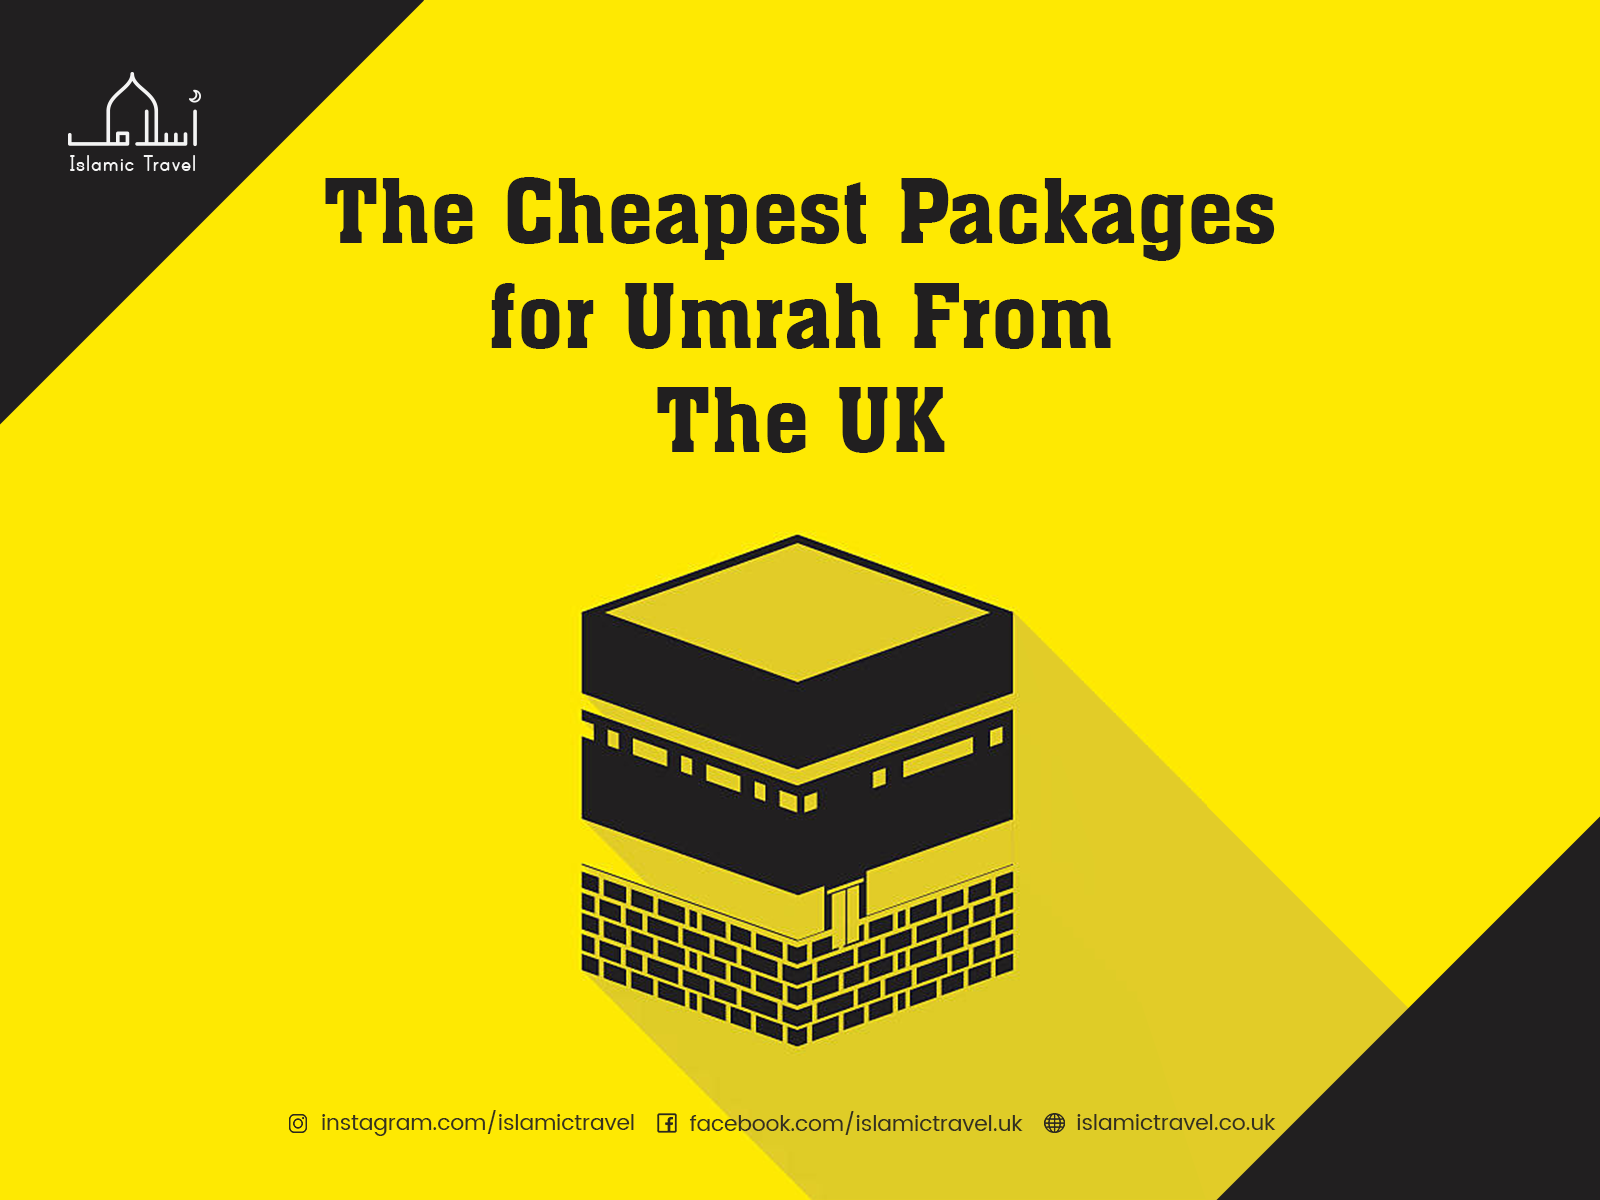 Umrah Banner: The Cheapest Packages For Umrah From The UK